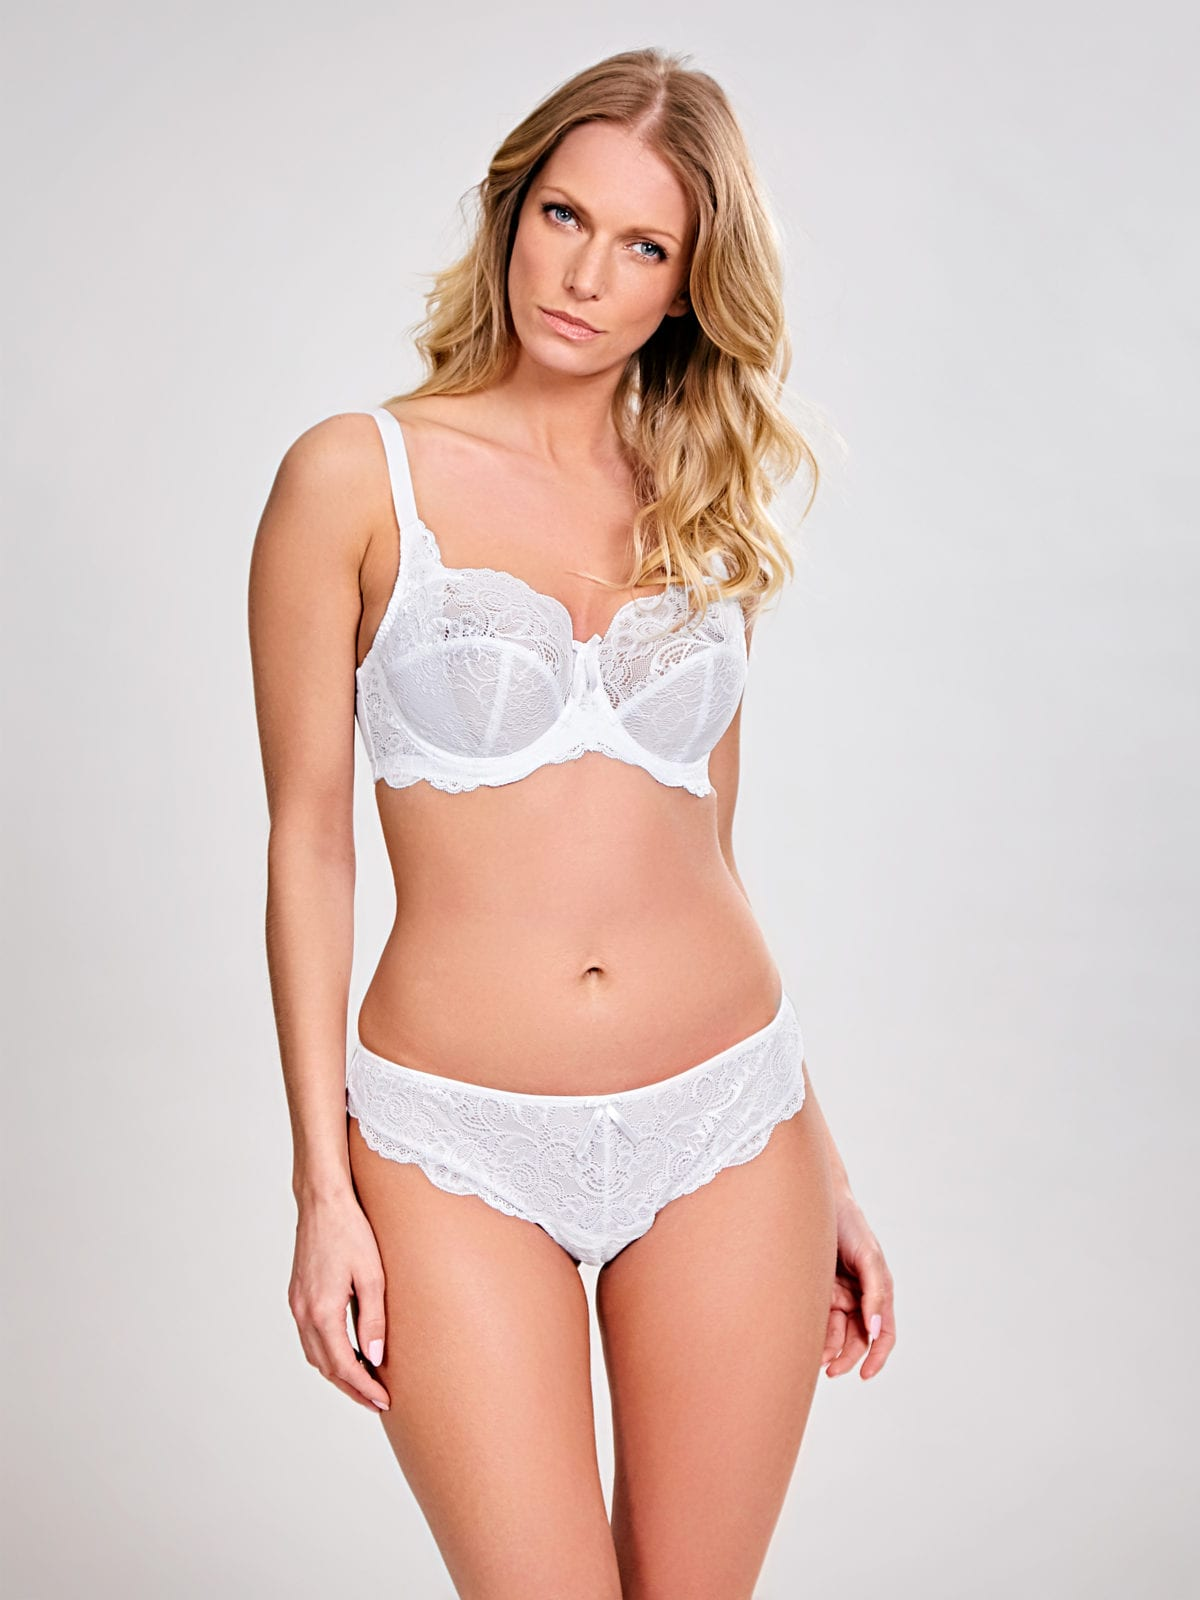 Базовое белье 5675_338_Andorra Full Cup Bra White Front Trade 5